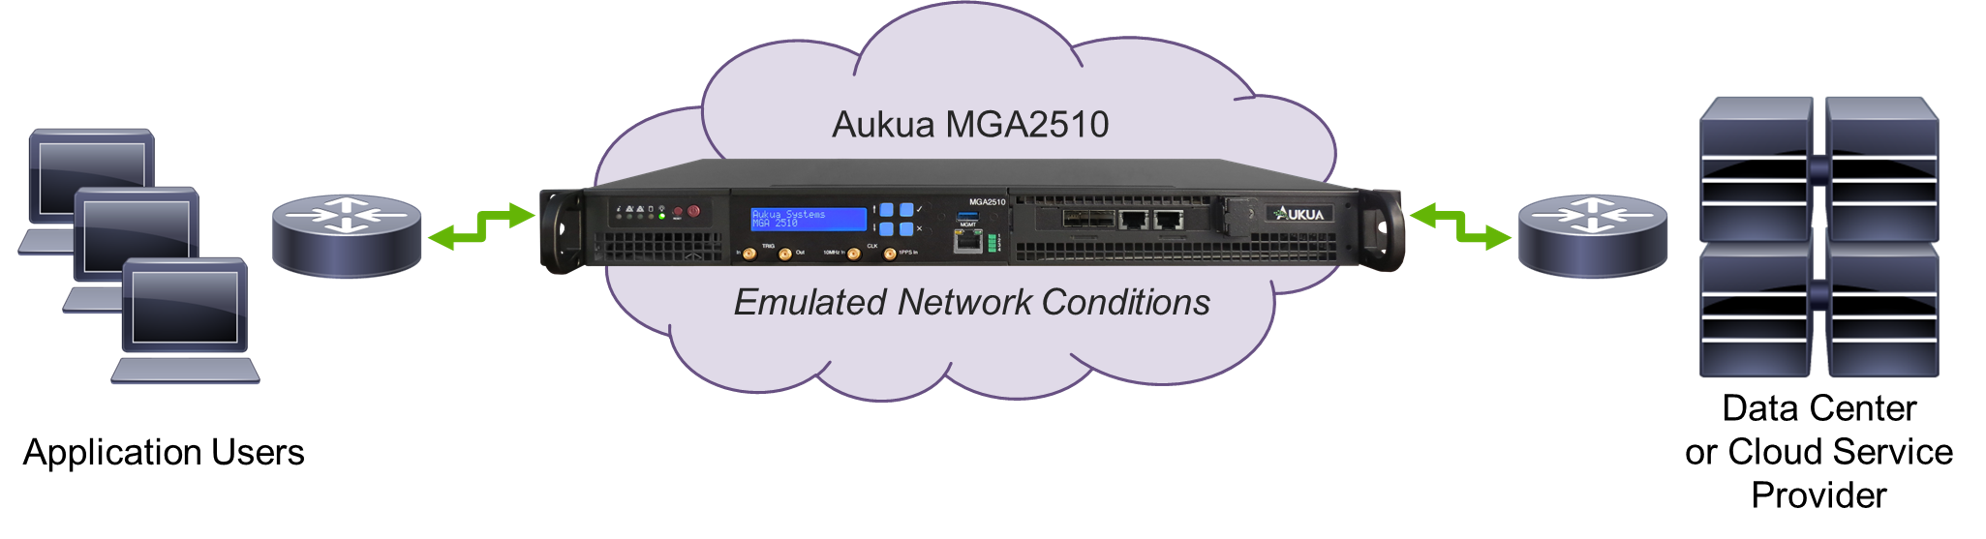 Example showing Aukua MGA2510 Network Emulation Solution